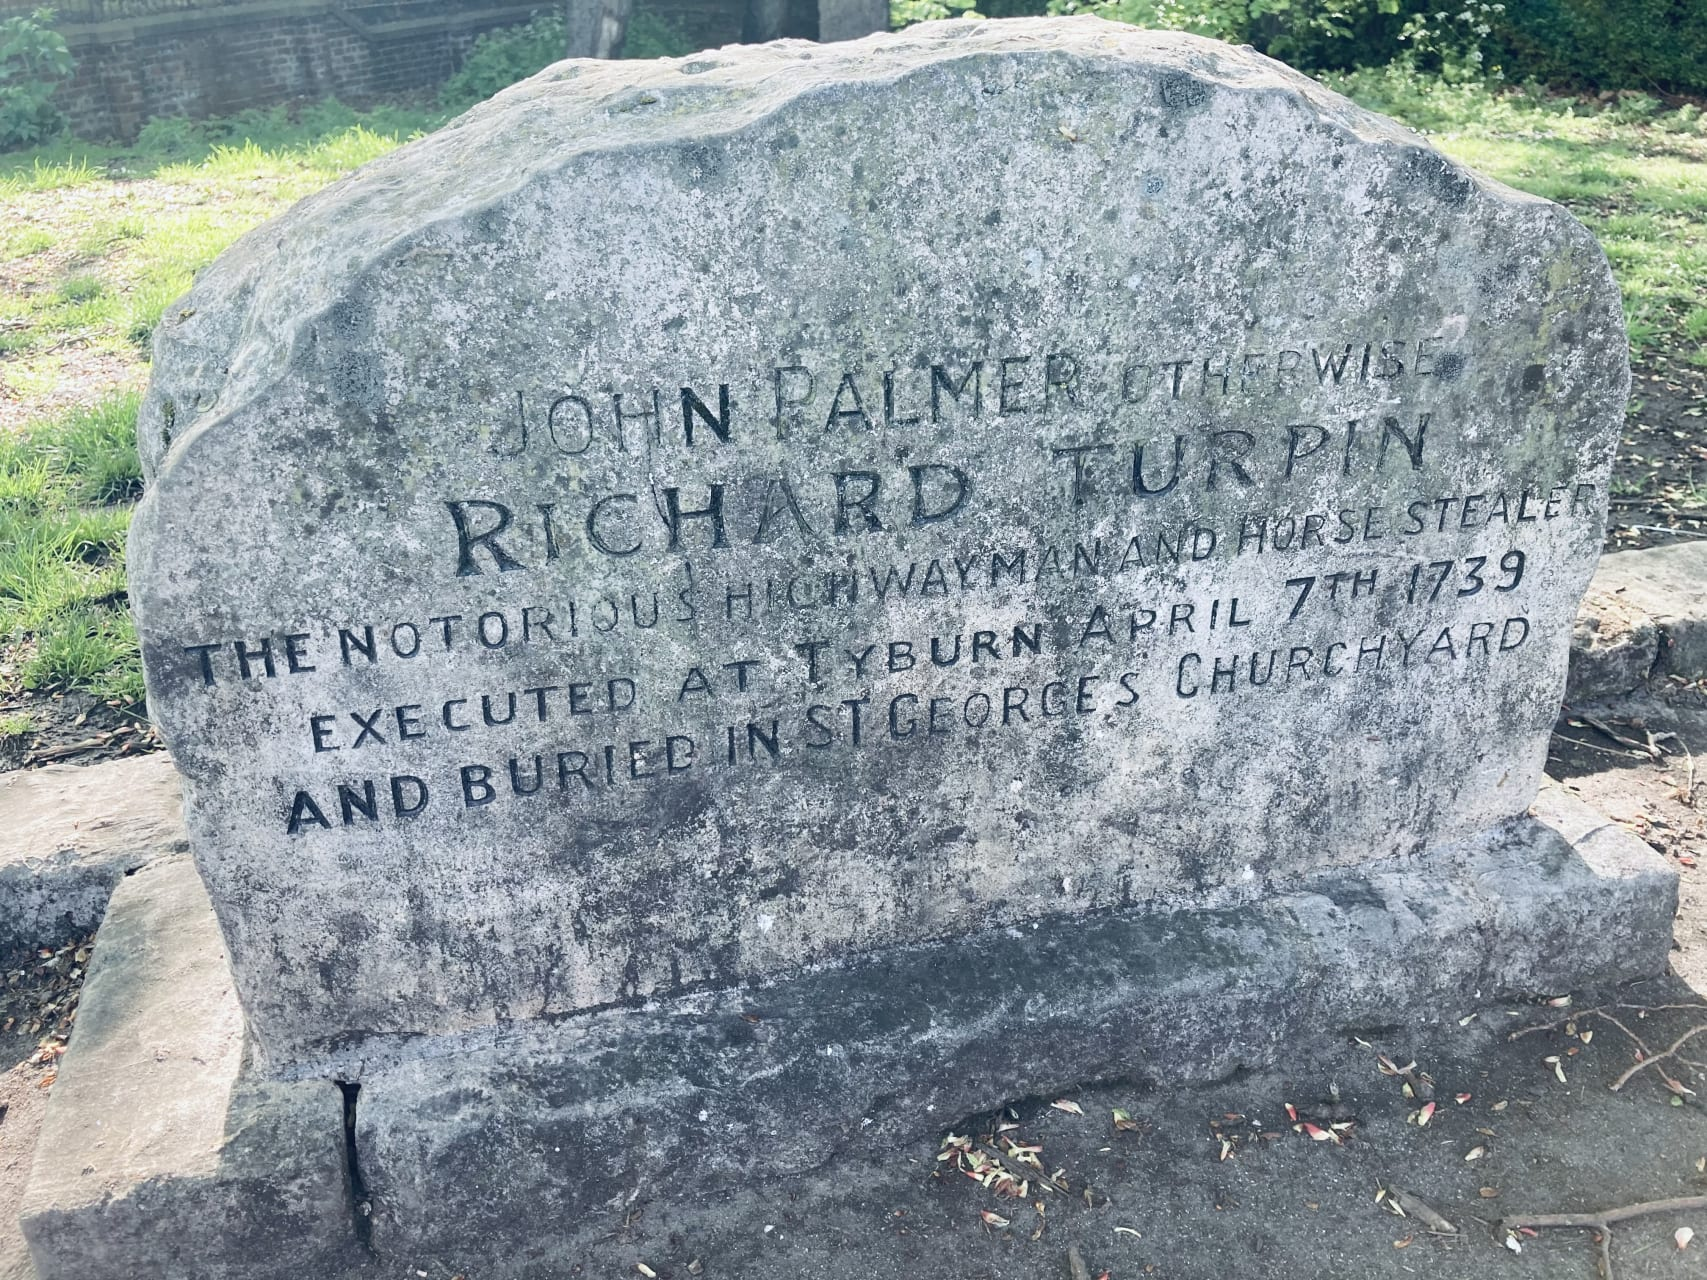 York - A walk with Dick Turpin - Sin and Splendour in 18th century York